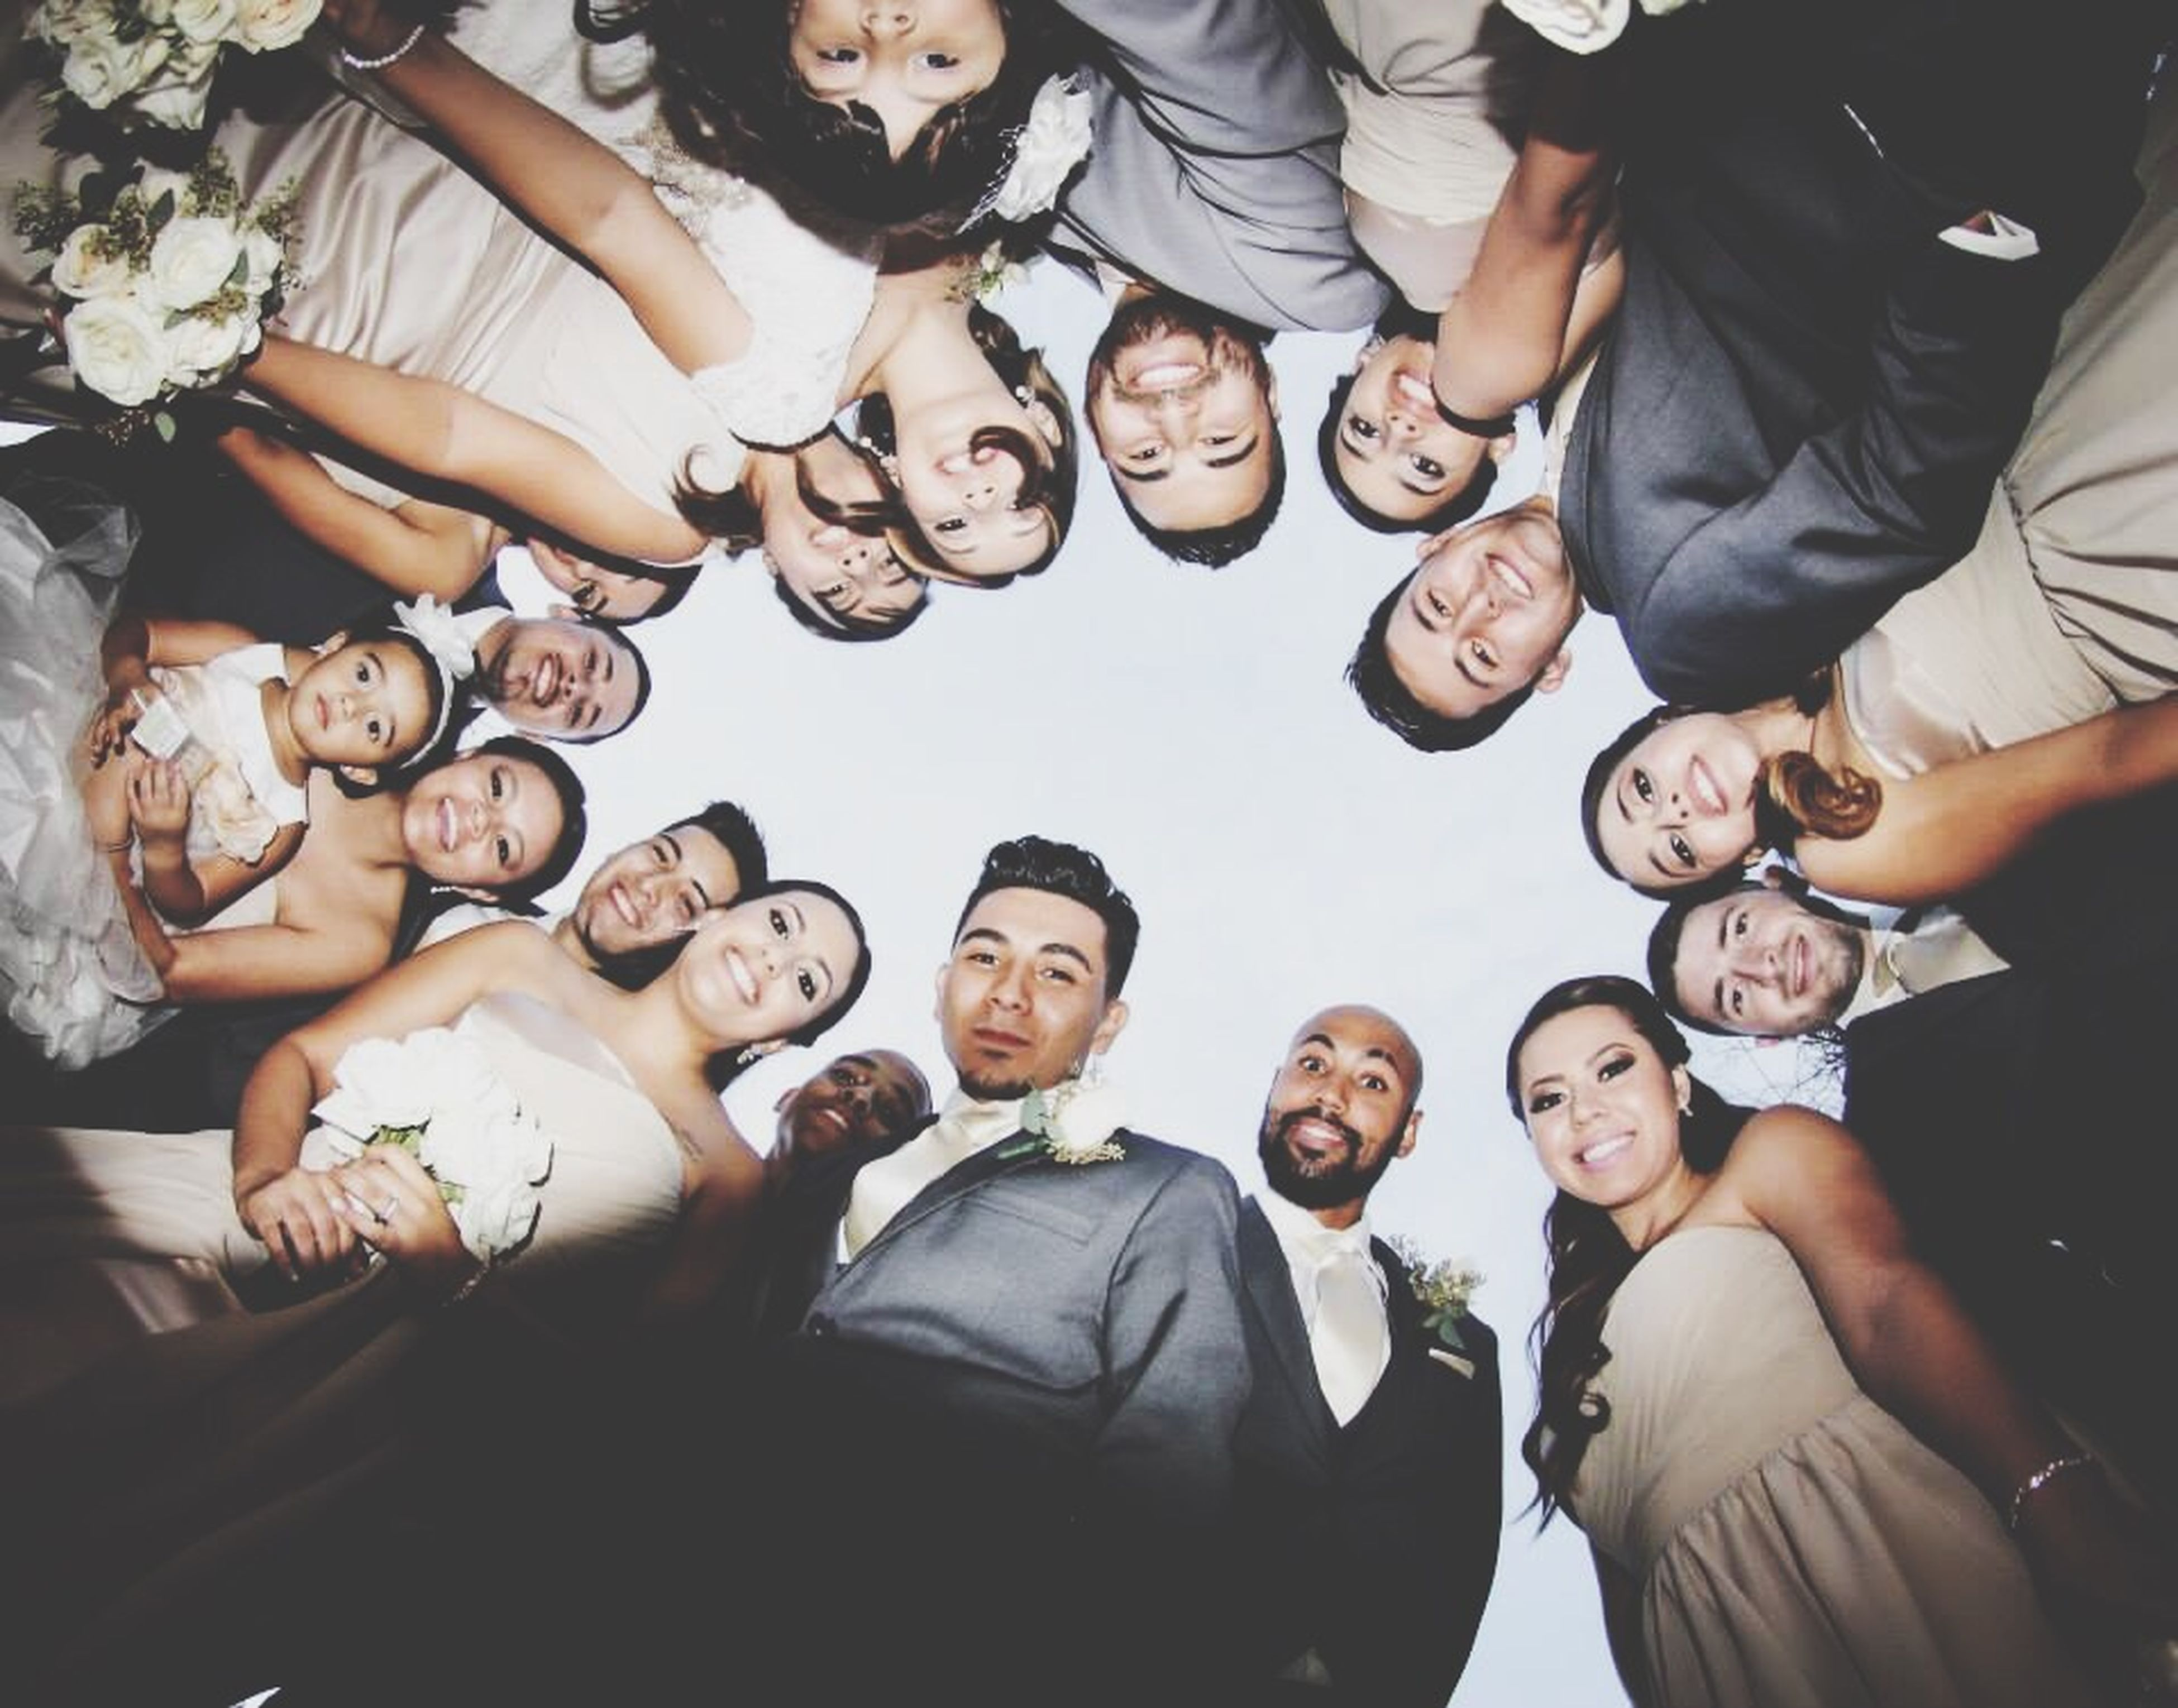 togetherness, lifestyles, leisure activity, bonding, friendship, casual clothing, men, person, love, standing, large group of people, indoors, fun, family, enjoyment, celebration, high angle view